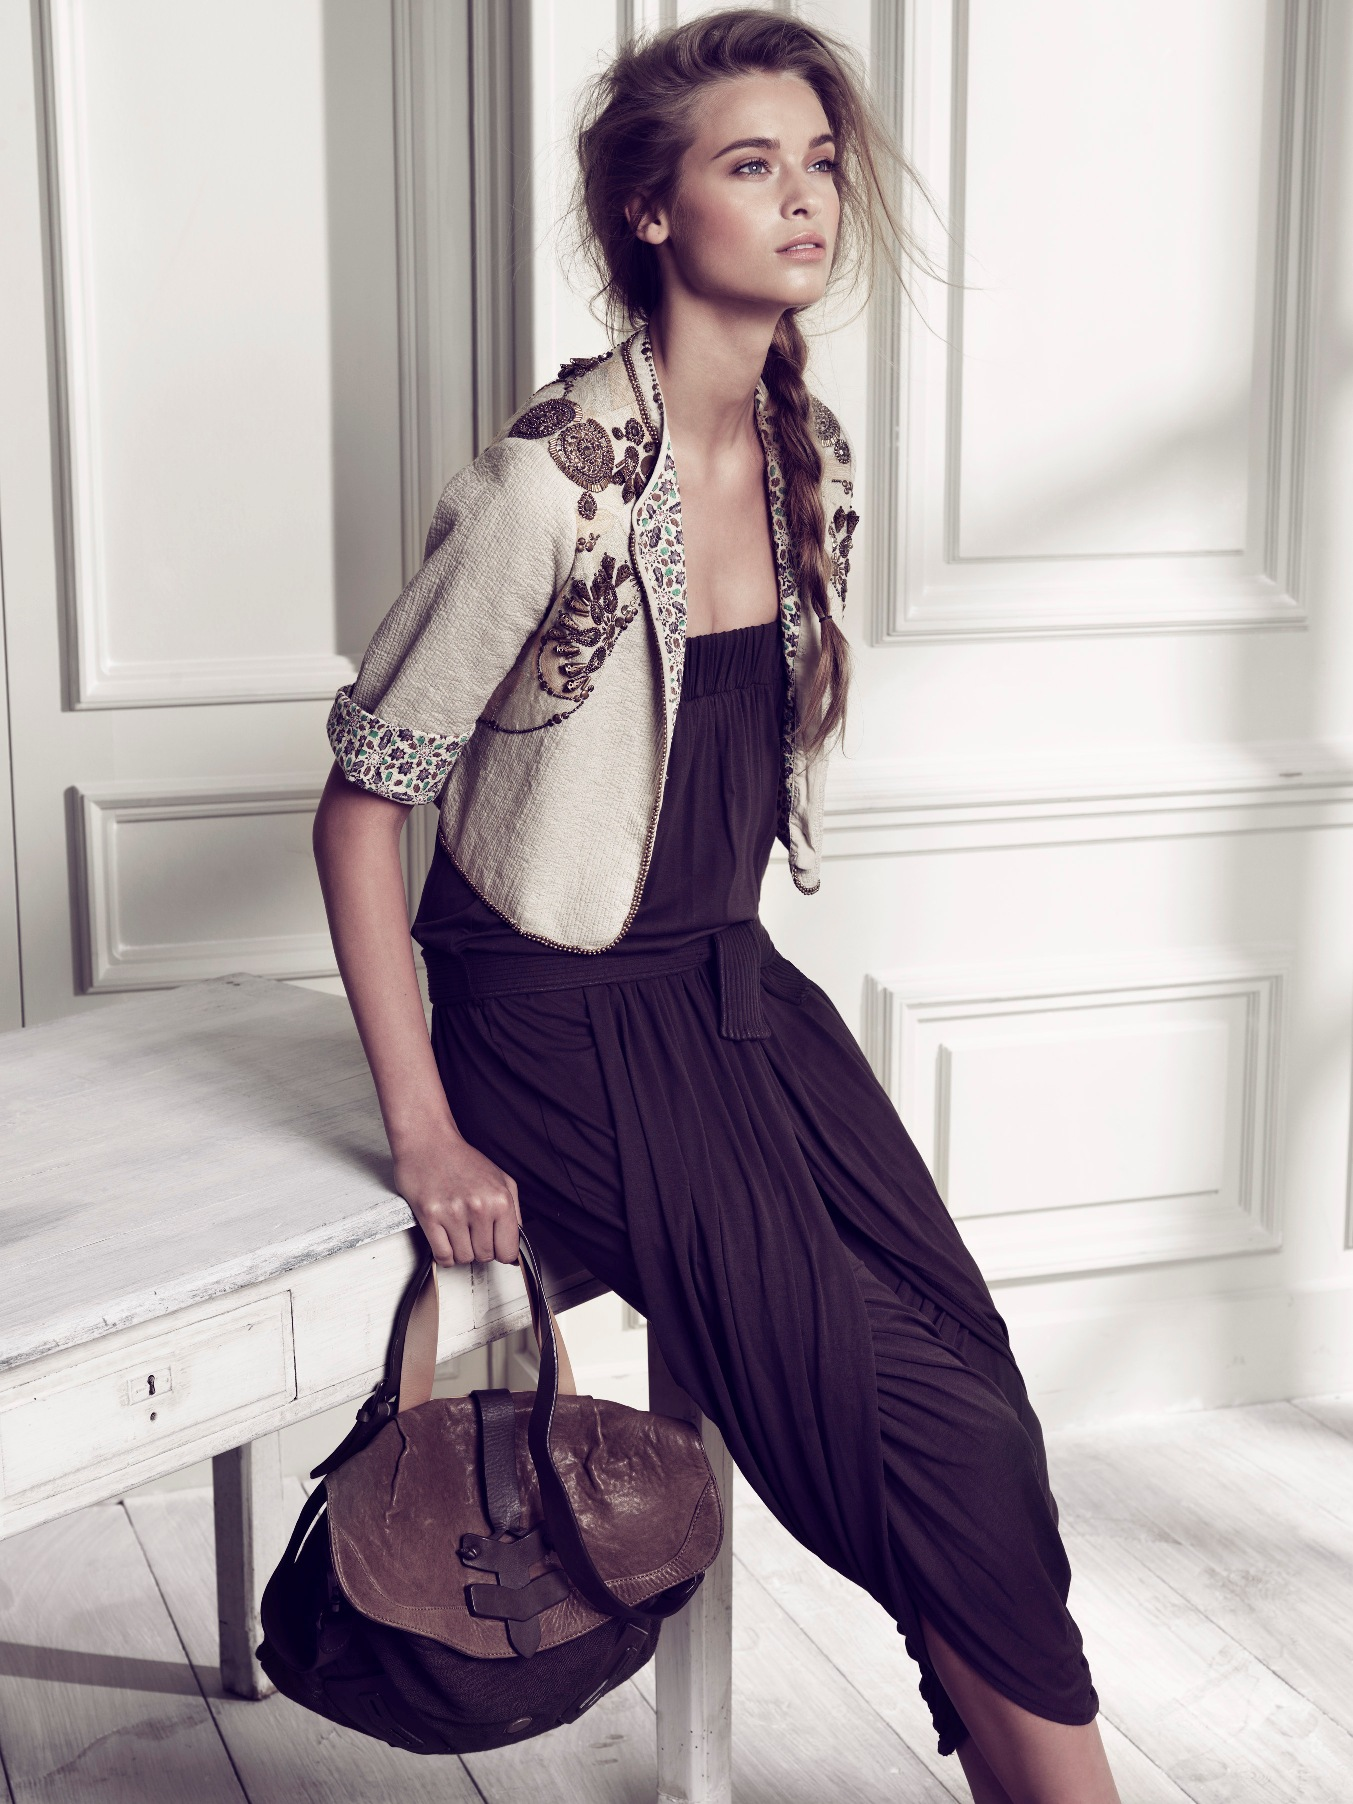 Fashion style Intropia hoss fall winter collection for lady